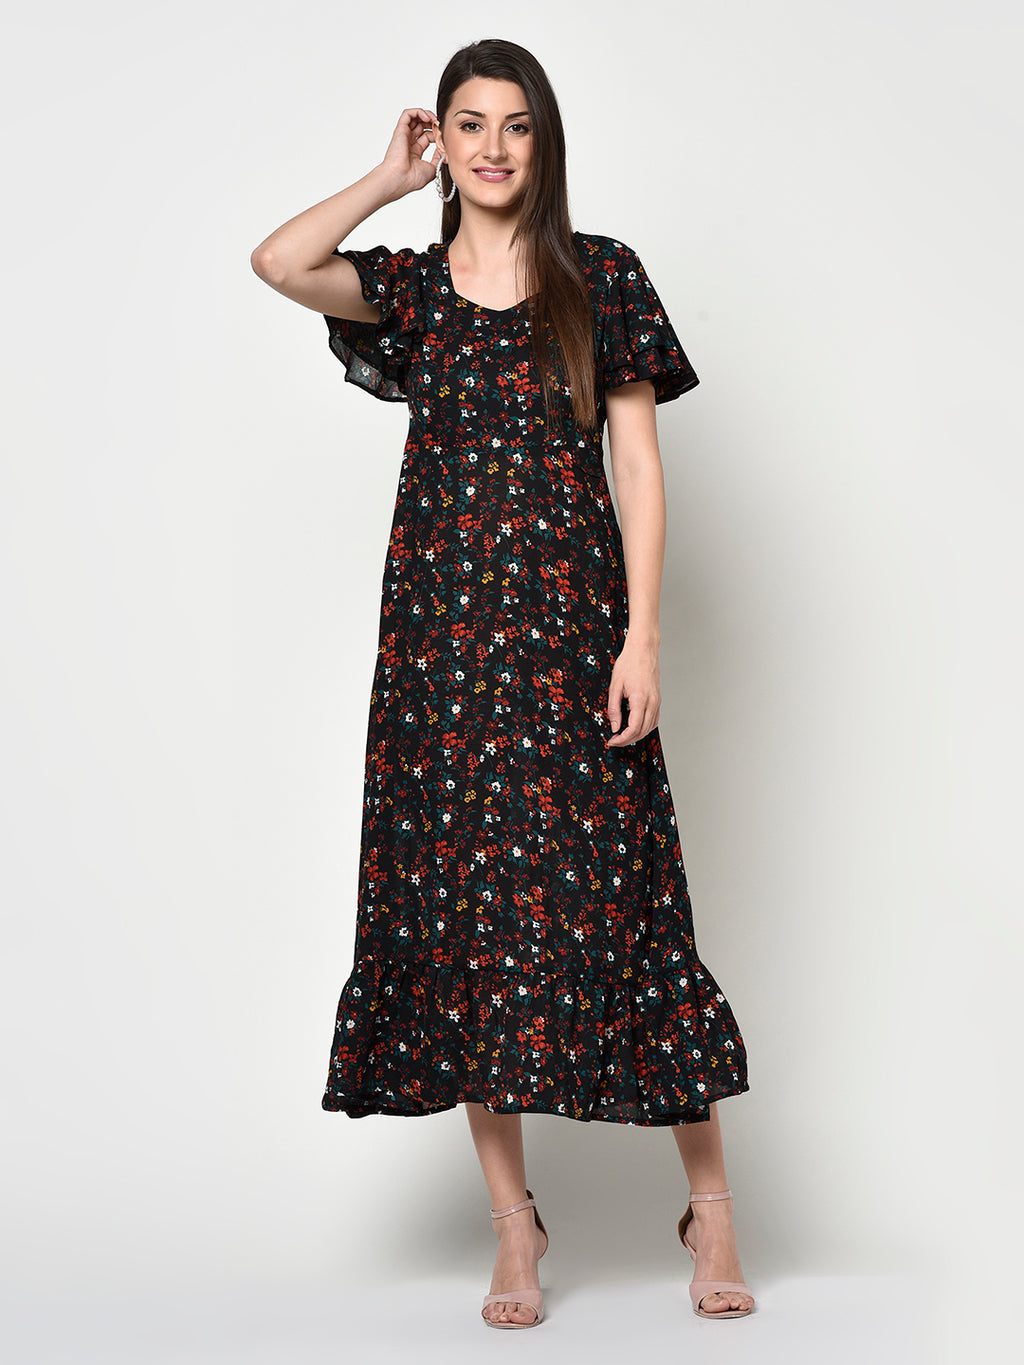 Black Floral Short Ruffle Sleeves Dress - Avsoy